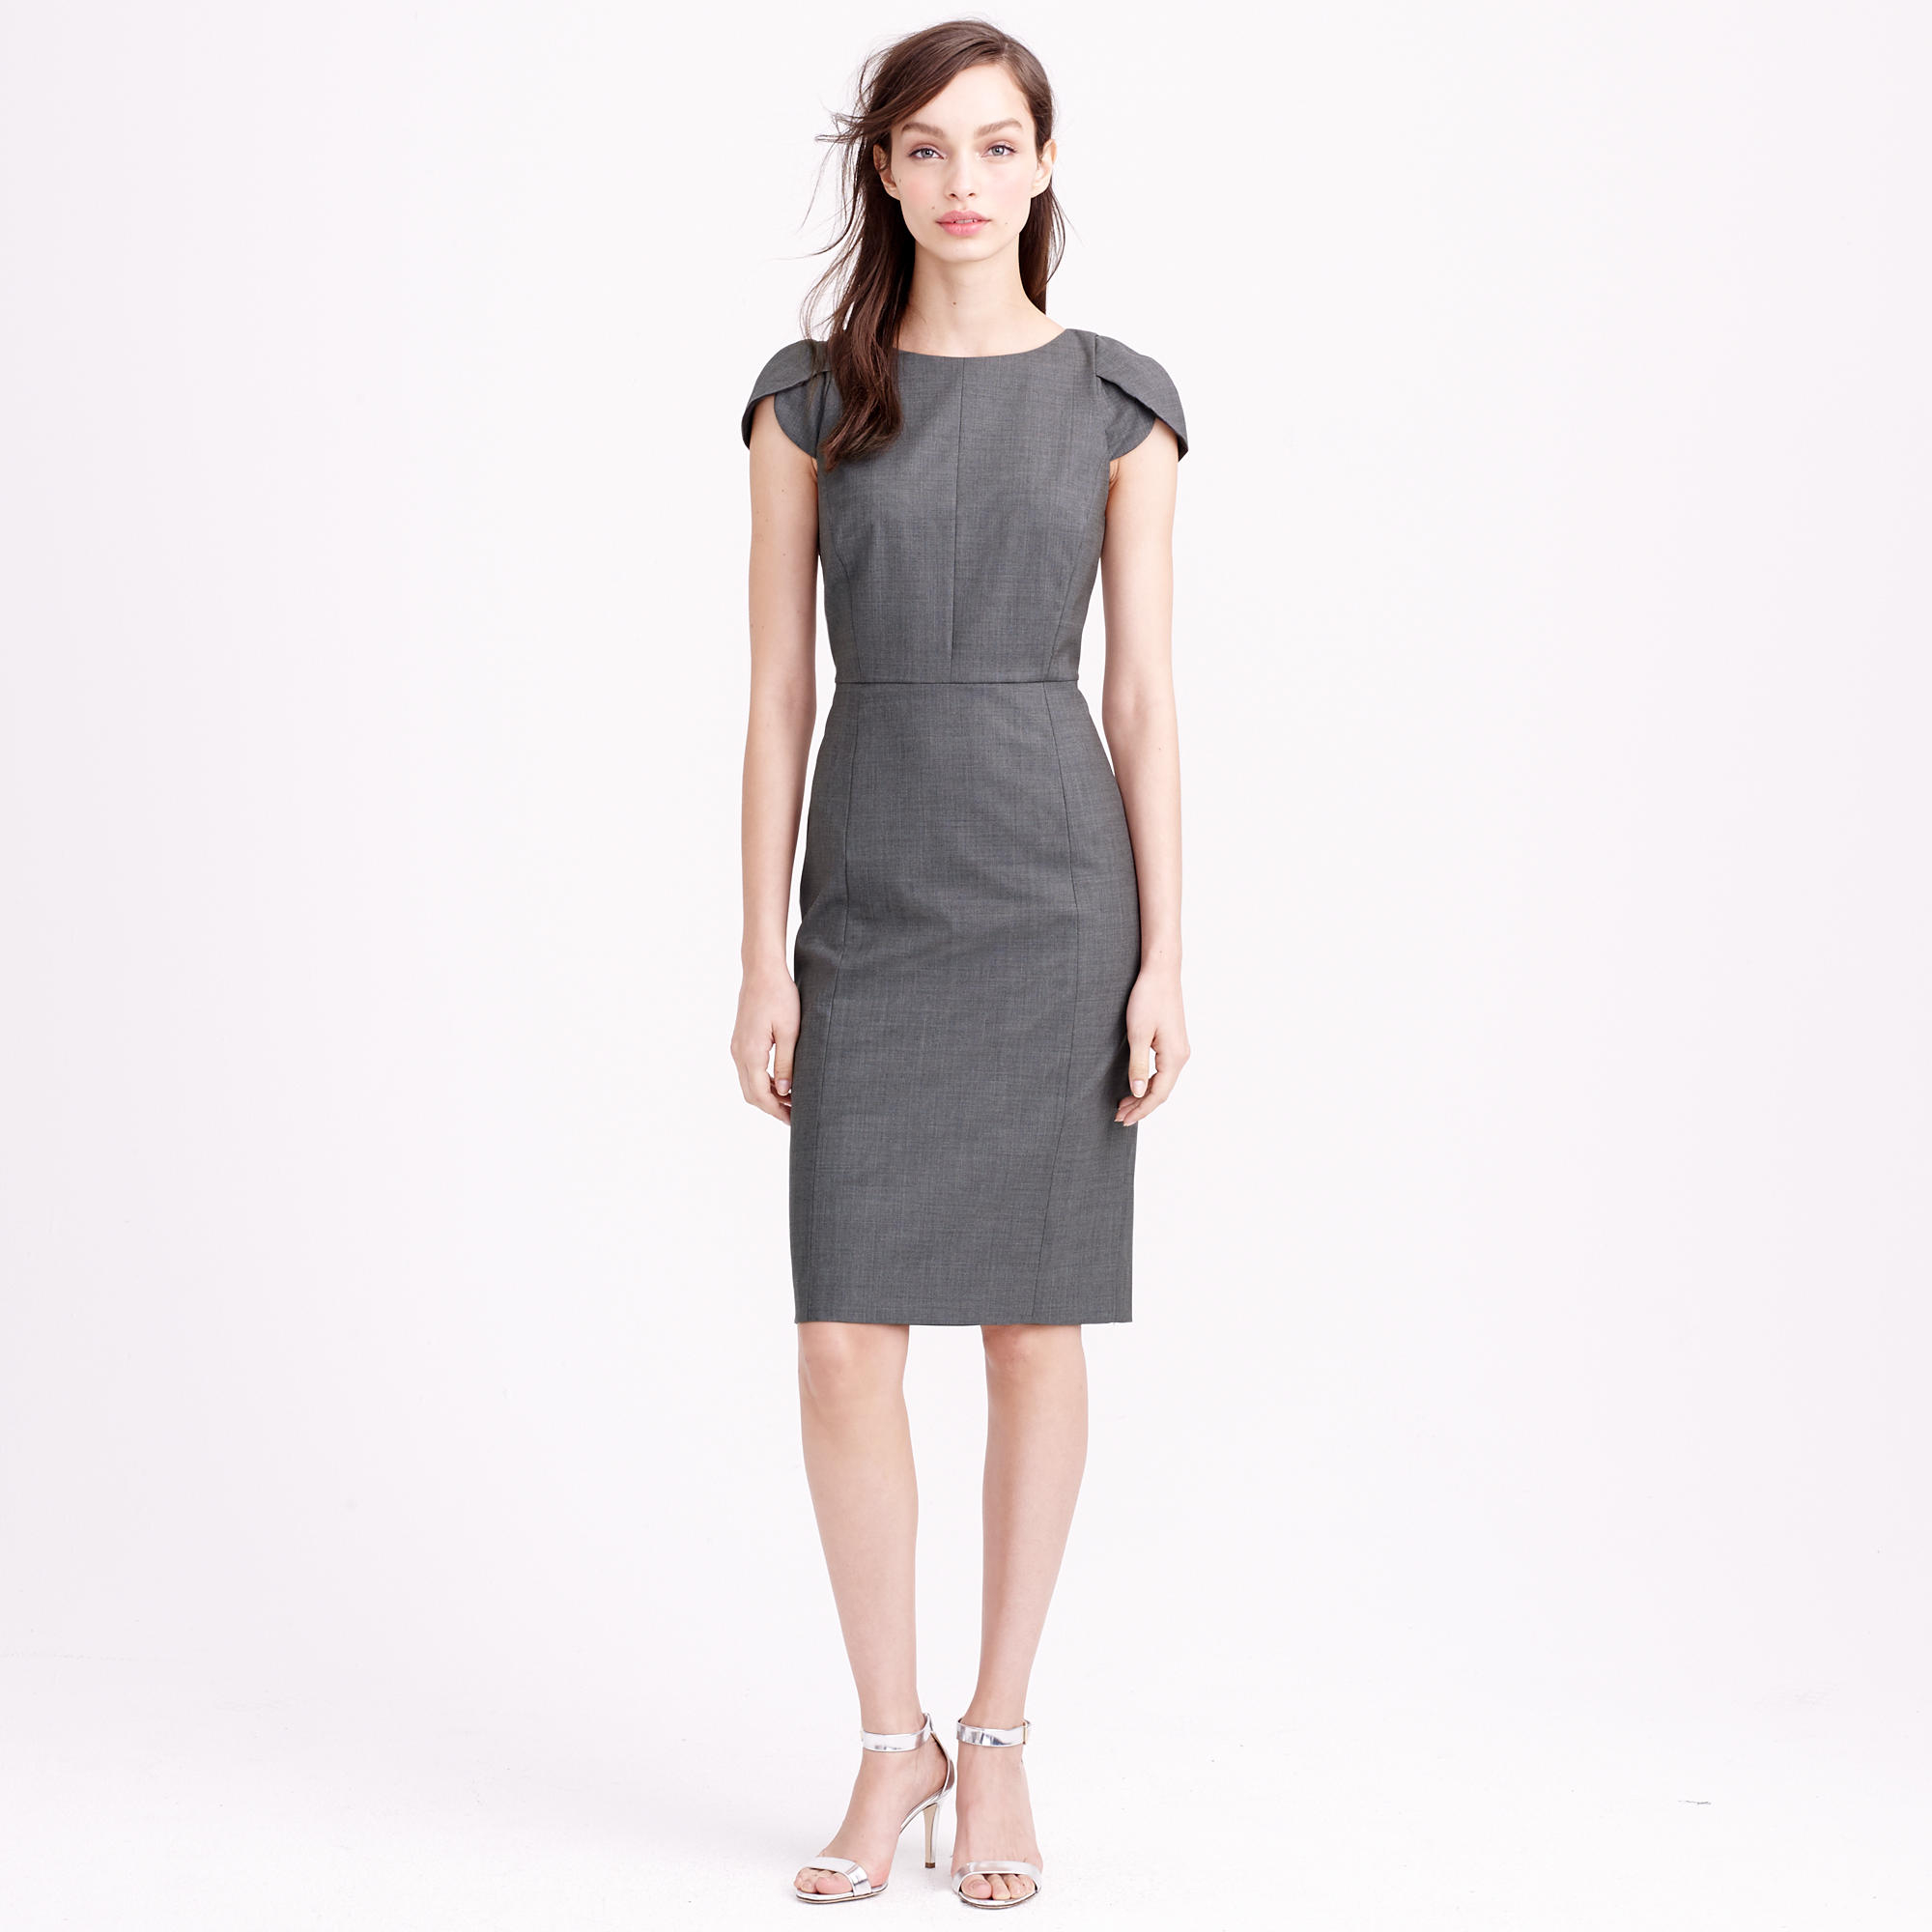 Galerry sheath dress cap sleeves